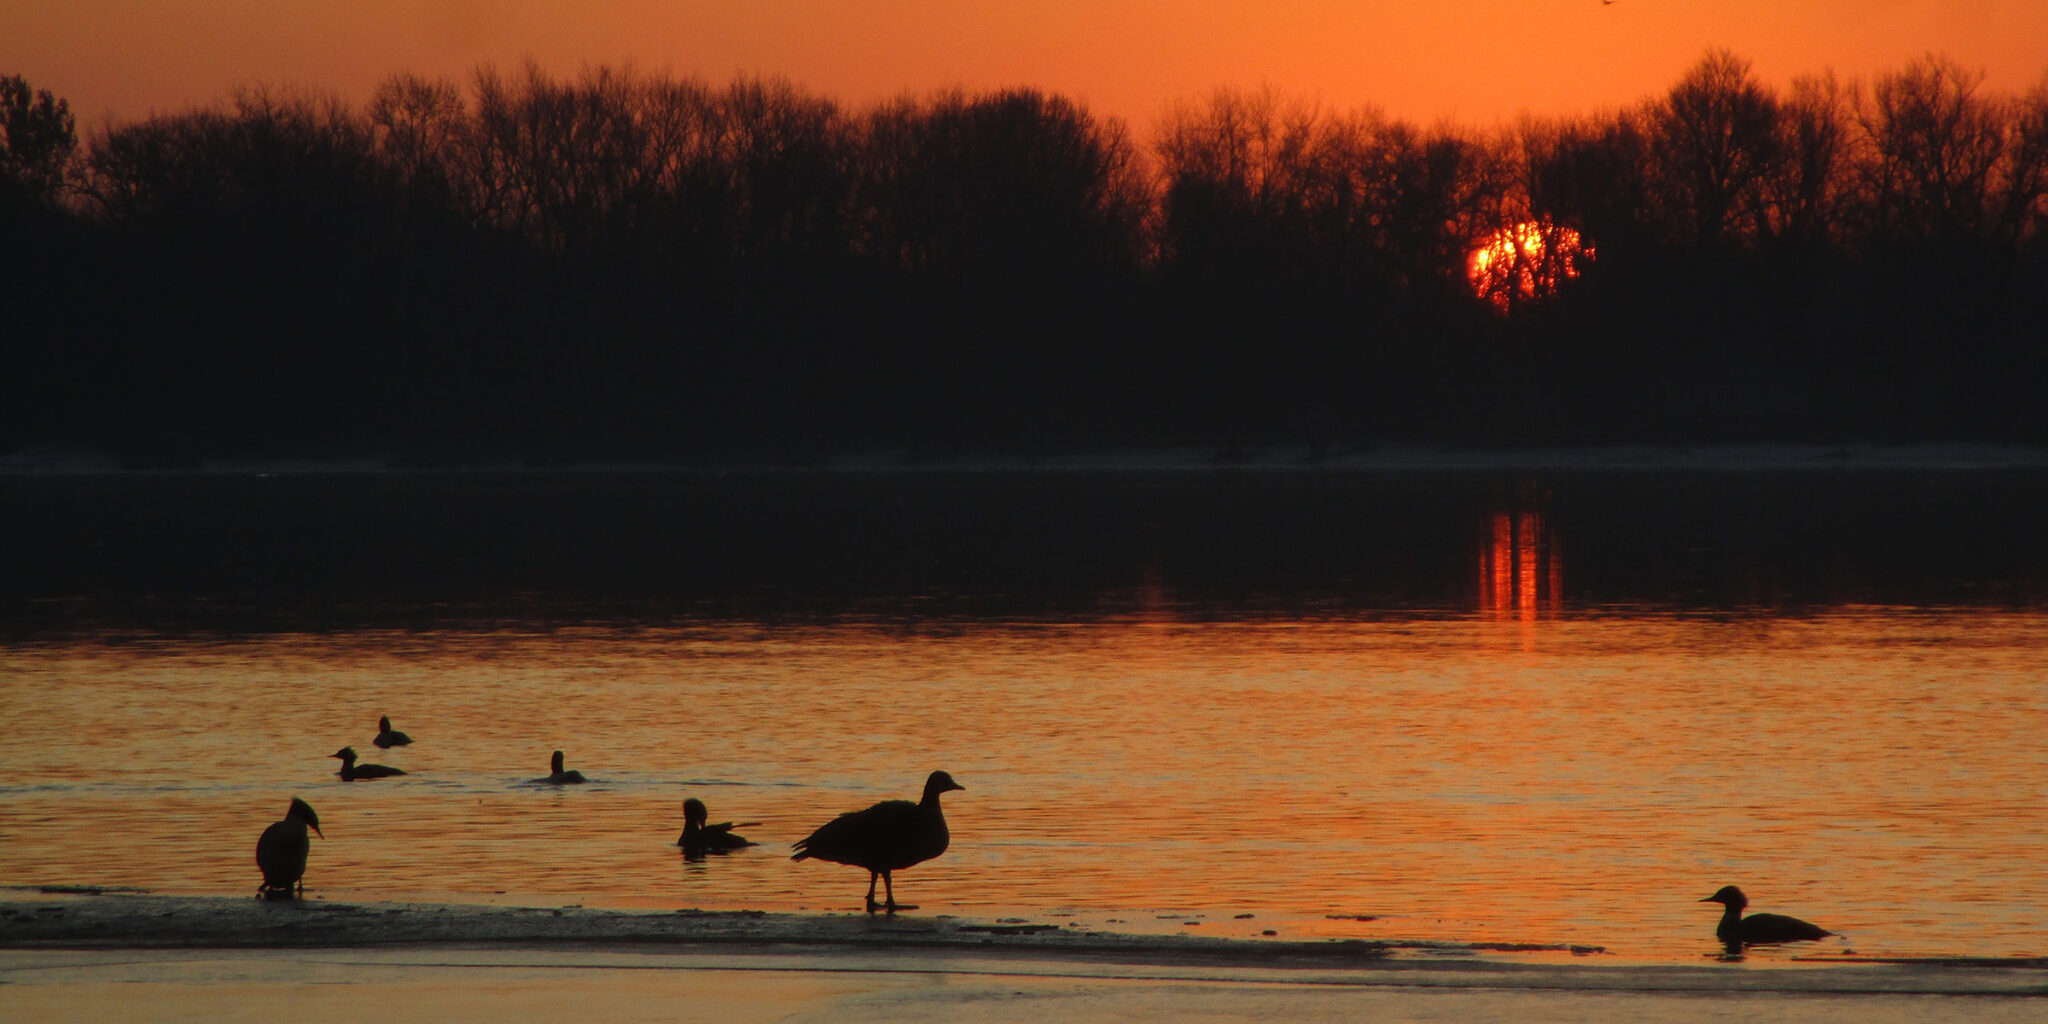 Sunset by the River at Nahant Marsh